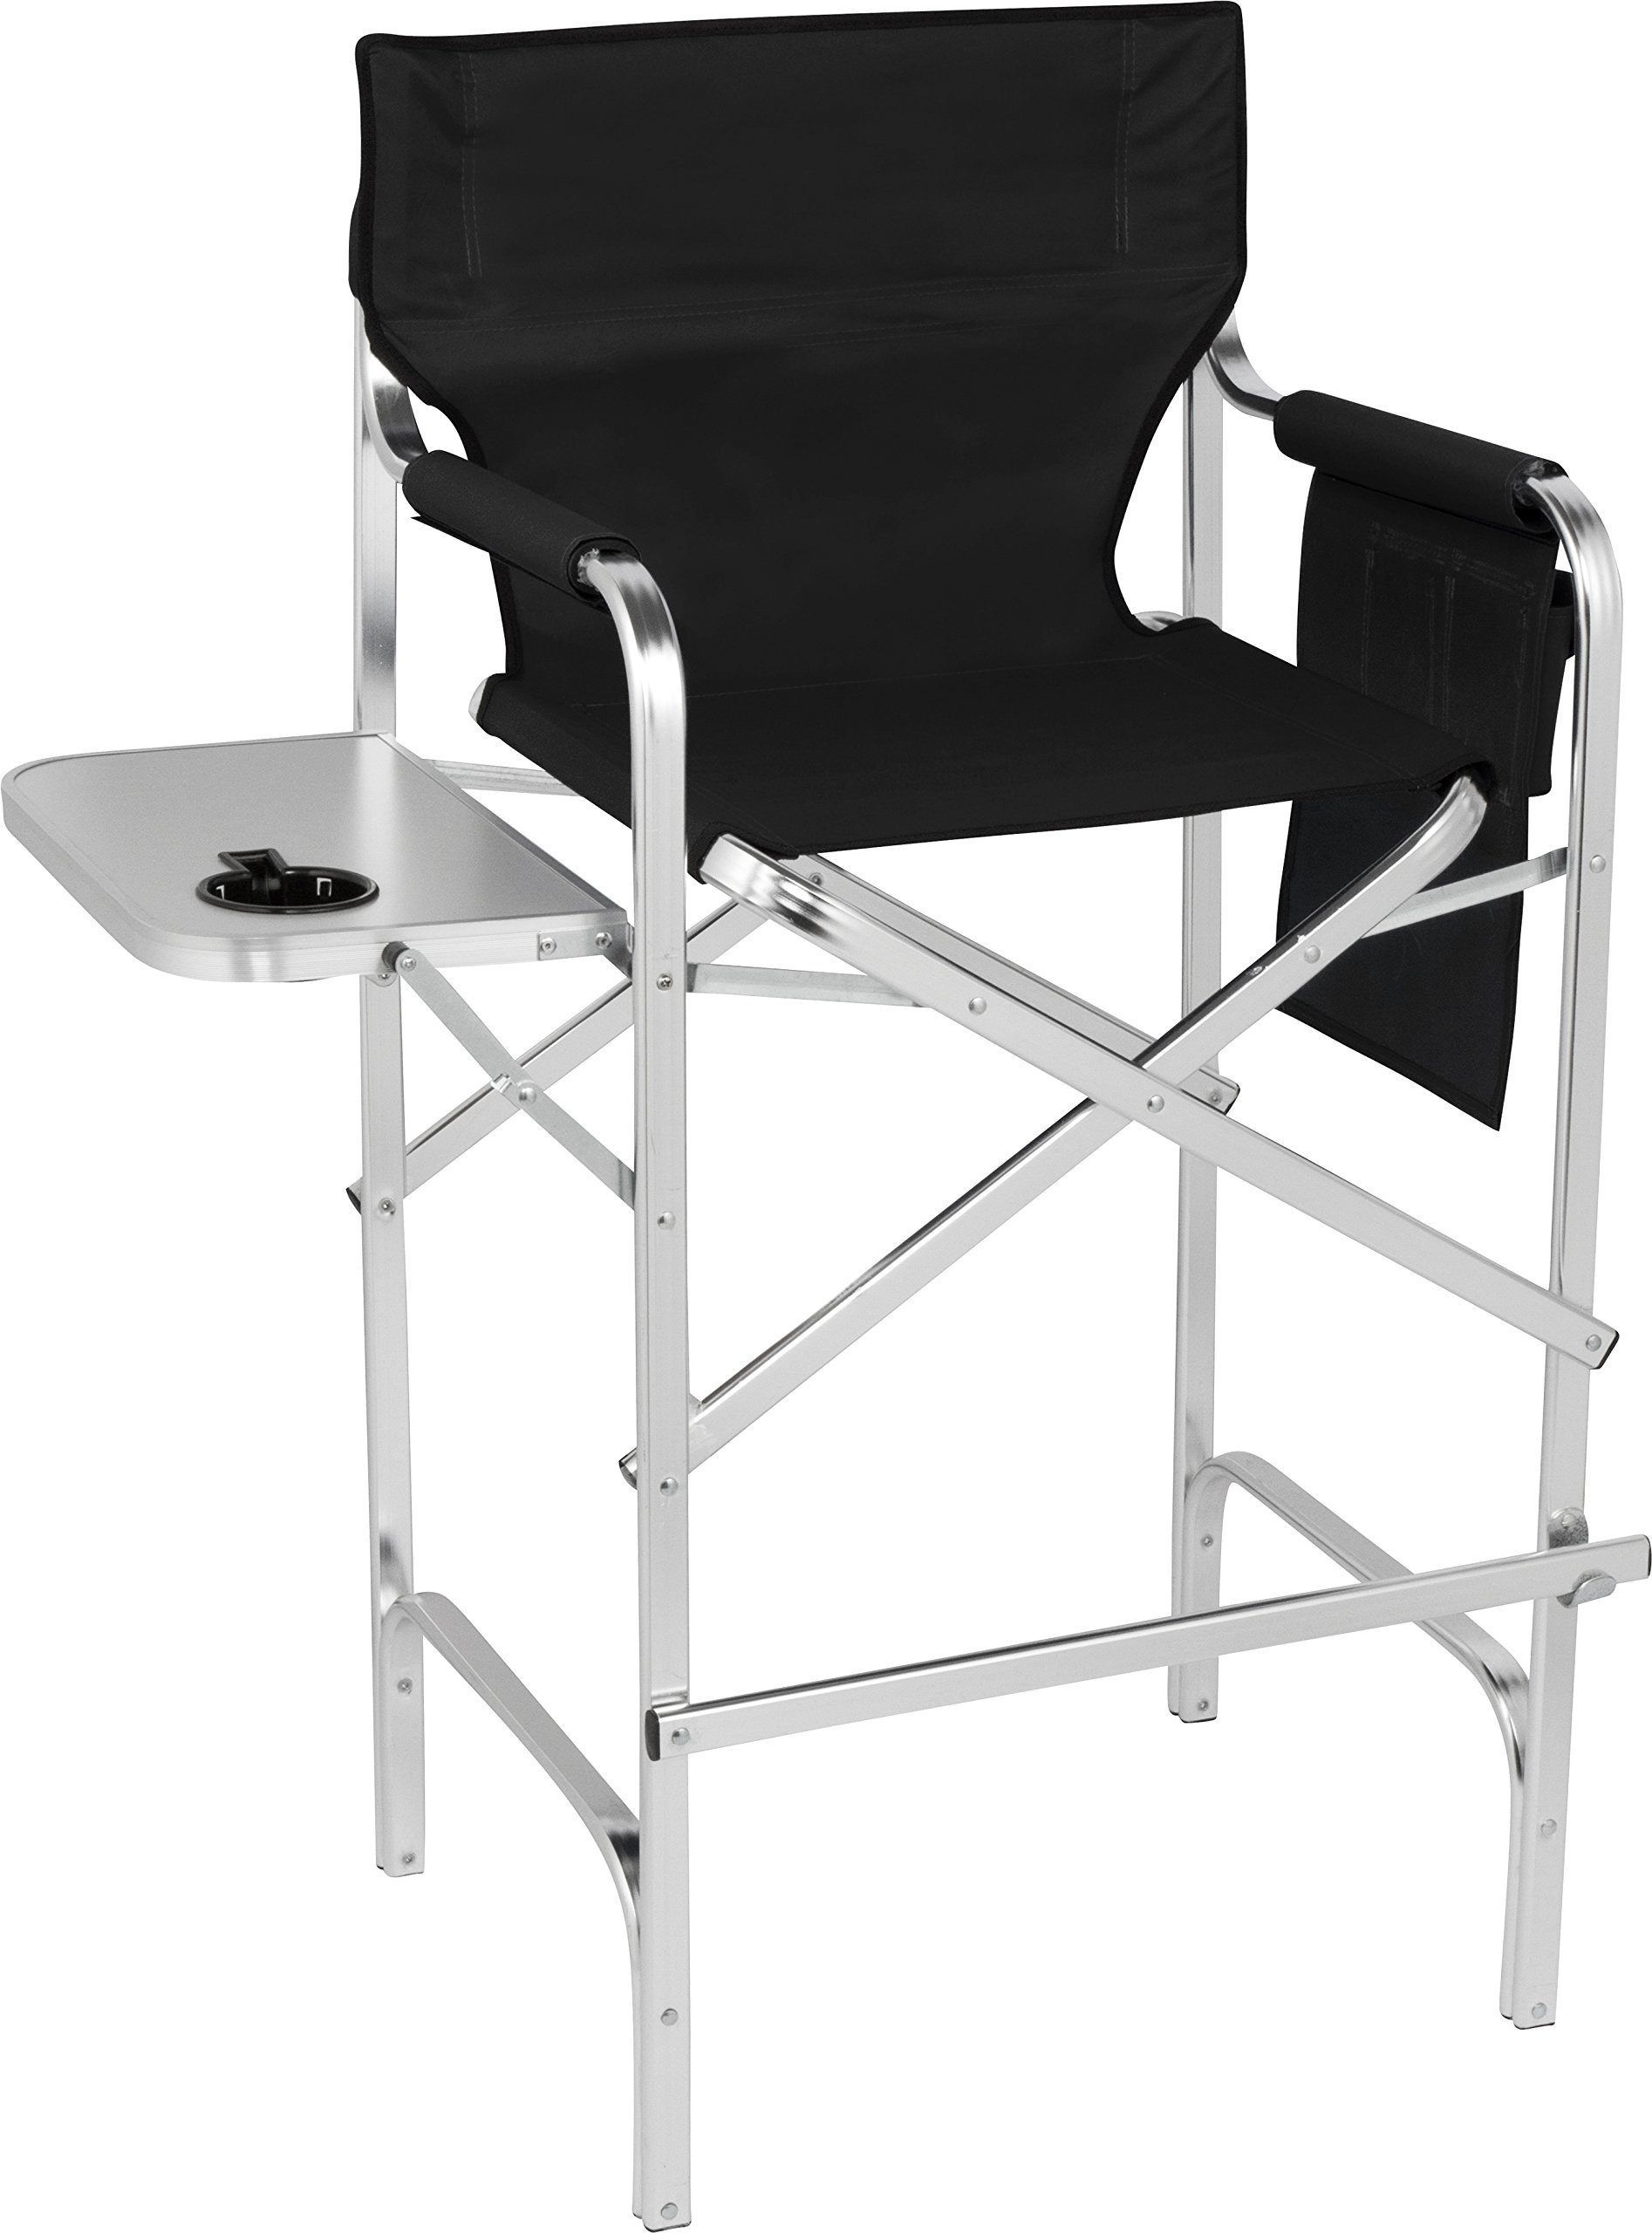 Trademark Innovations 45'' Aluminum Frame Tall Metal Director's Chair with Side Table (Black) by Trademark Innovations